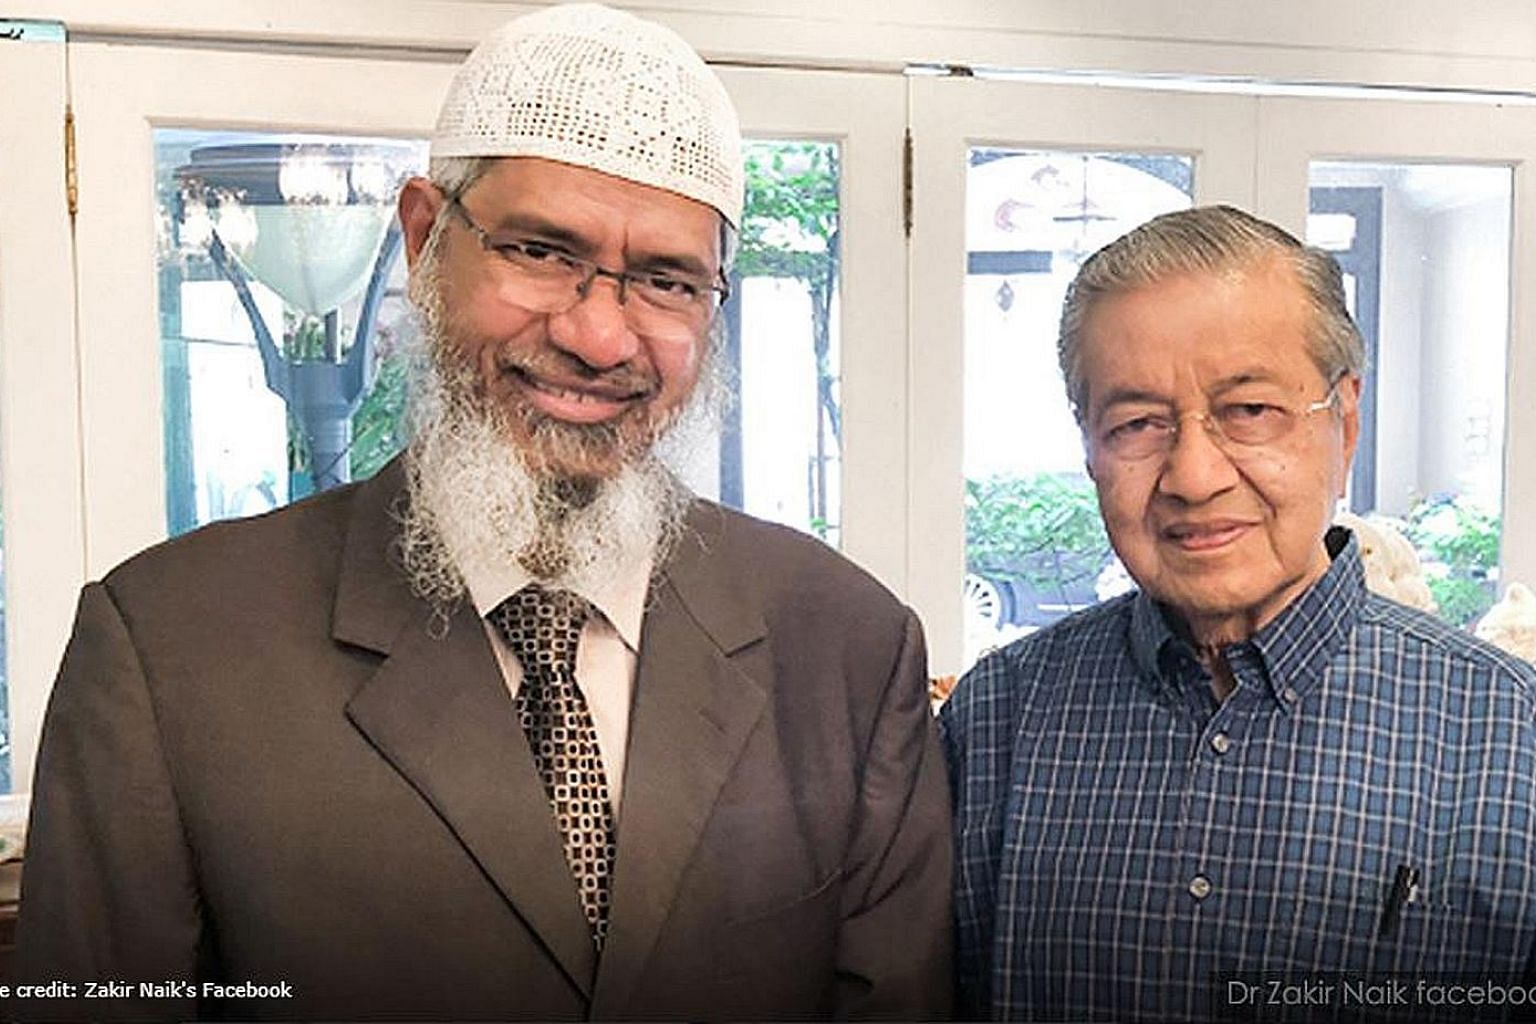 Malaysian Prime Minister Mahathir Mohamad has ruled out sending Dr Zakir Naik, who is suspected of inciting terrorism, back to India.